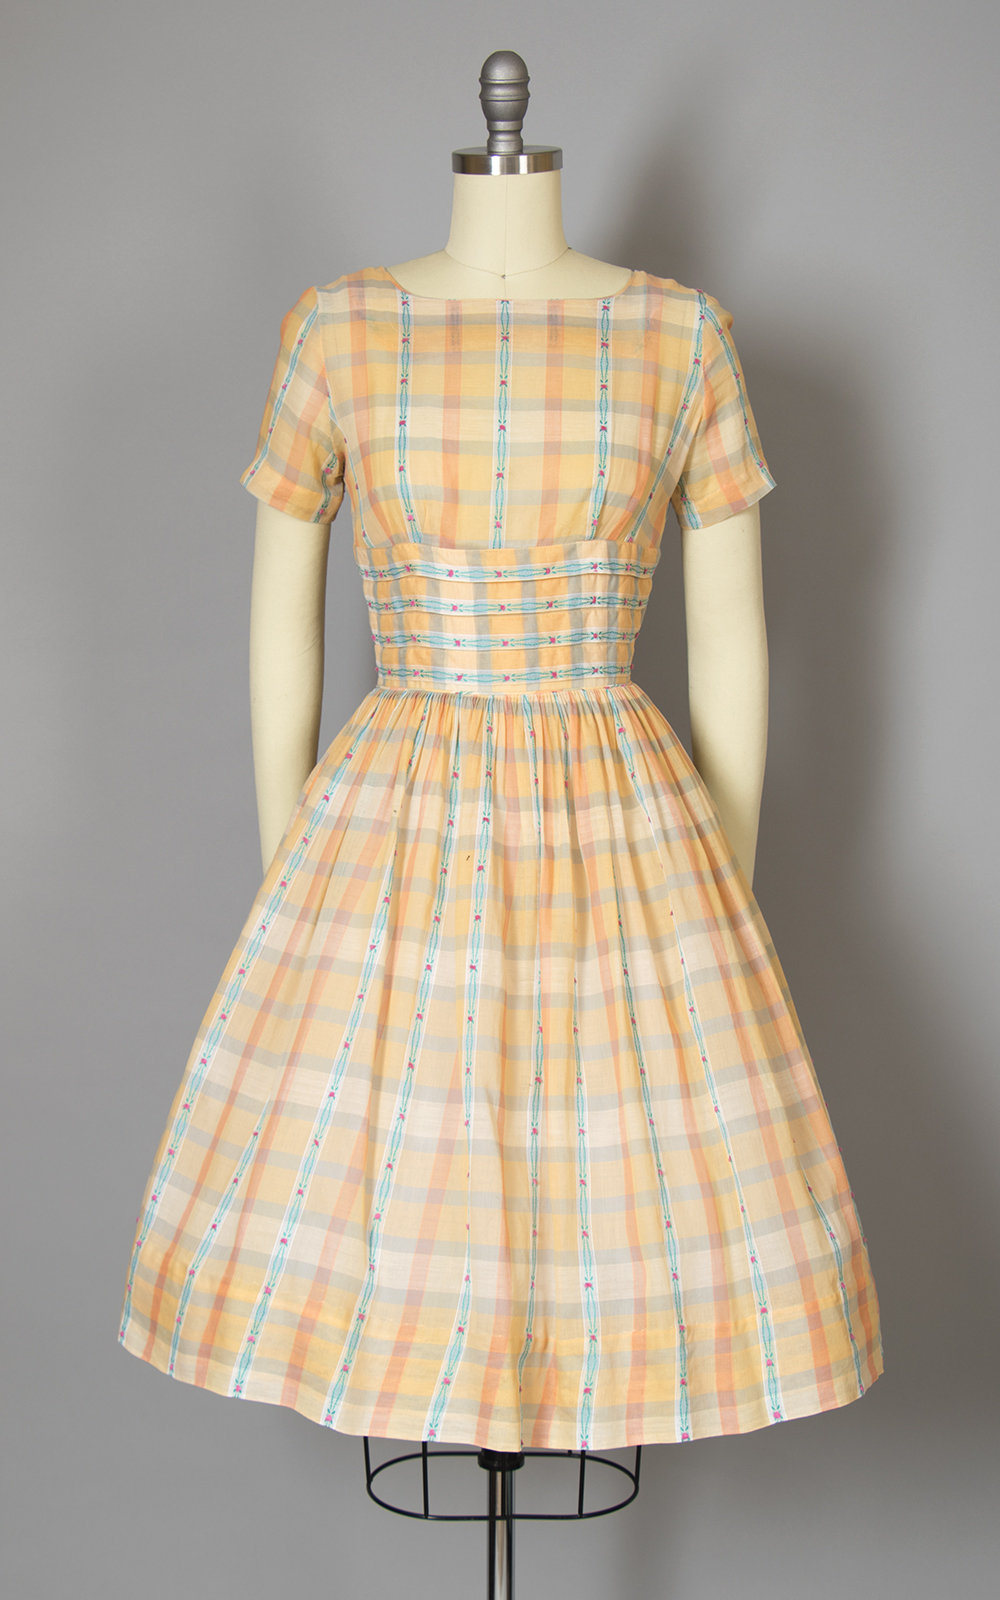 Vintage 1950s Dress | 50s Peach Peach Plaid Floral Woven Cotton Voile Full Skirt Day Dress (x-small)